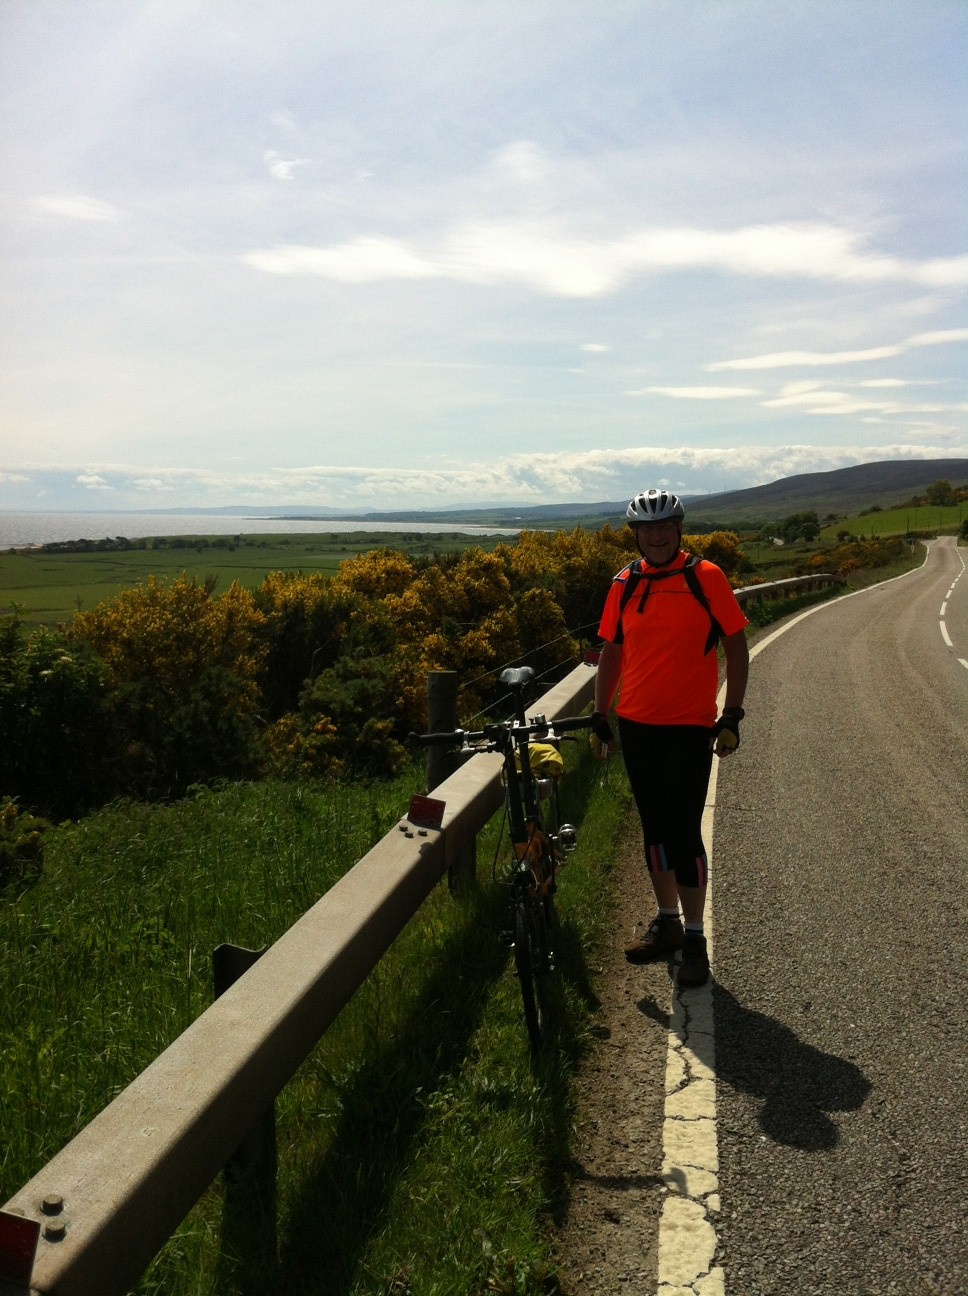 On the road to Helmsdale